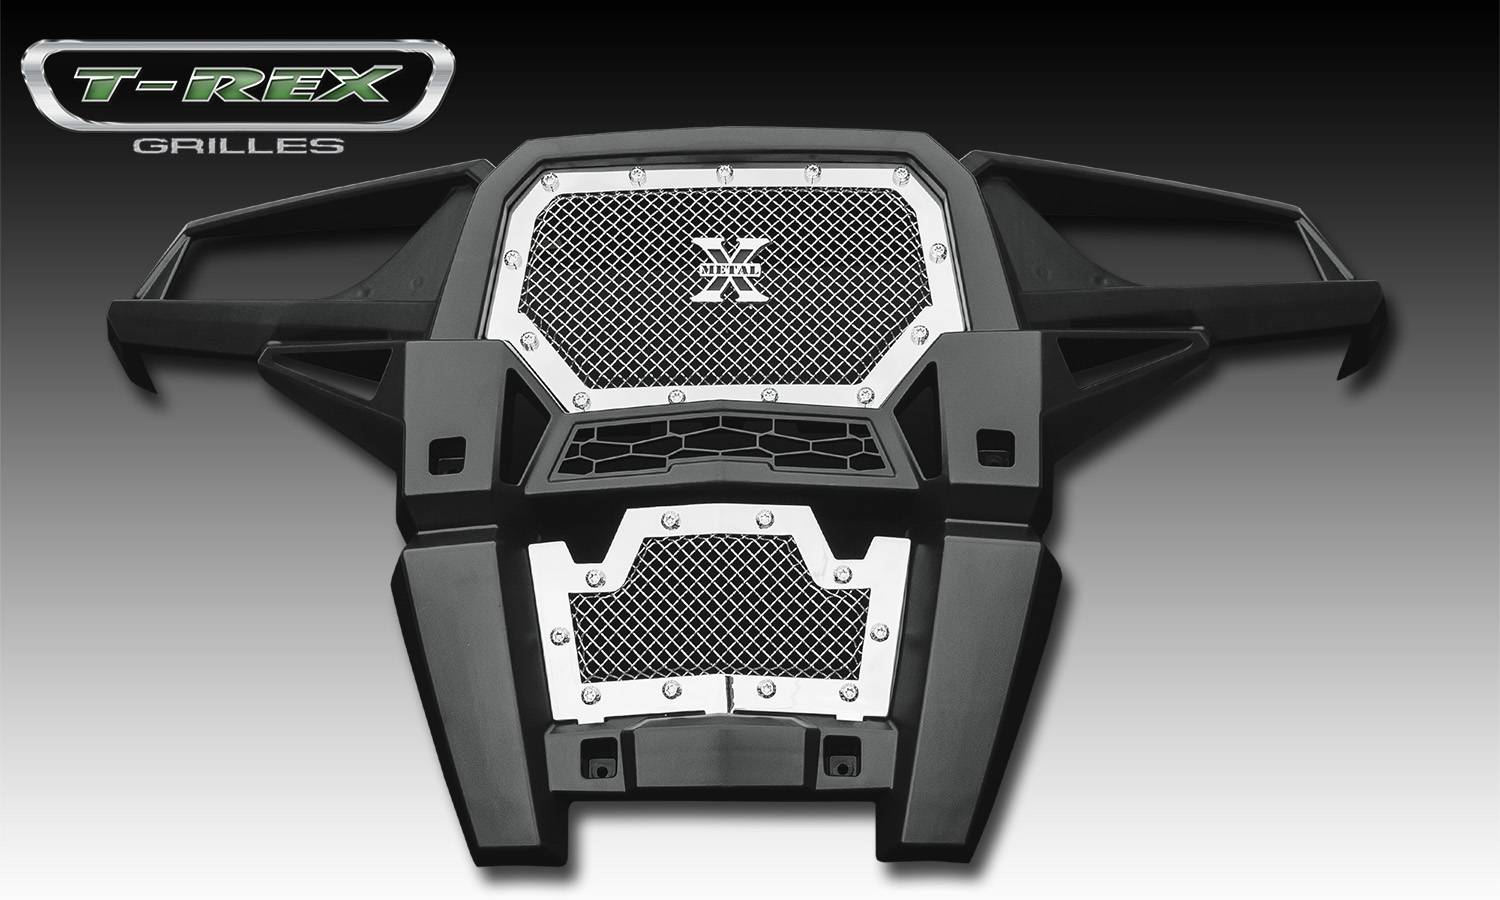 T-REX Polaris RZR XP 1000 Polaris RZR XP 1000, X-Metal, Formed Mesh, Main Grille, REPLACEMENT, 1 Pc, Polished Stainless Steel - Pt # 6719010